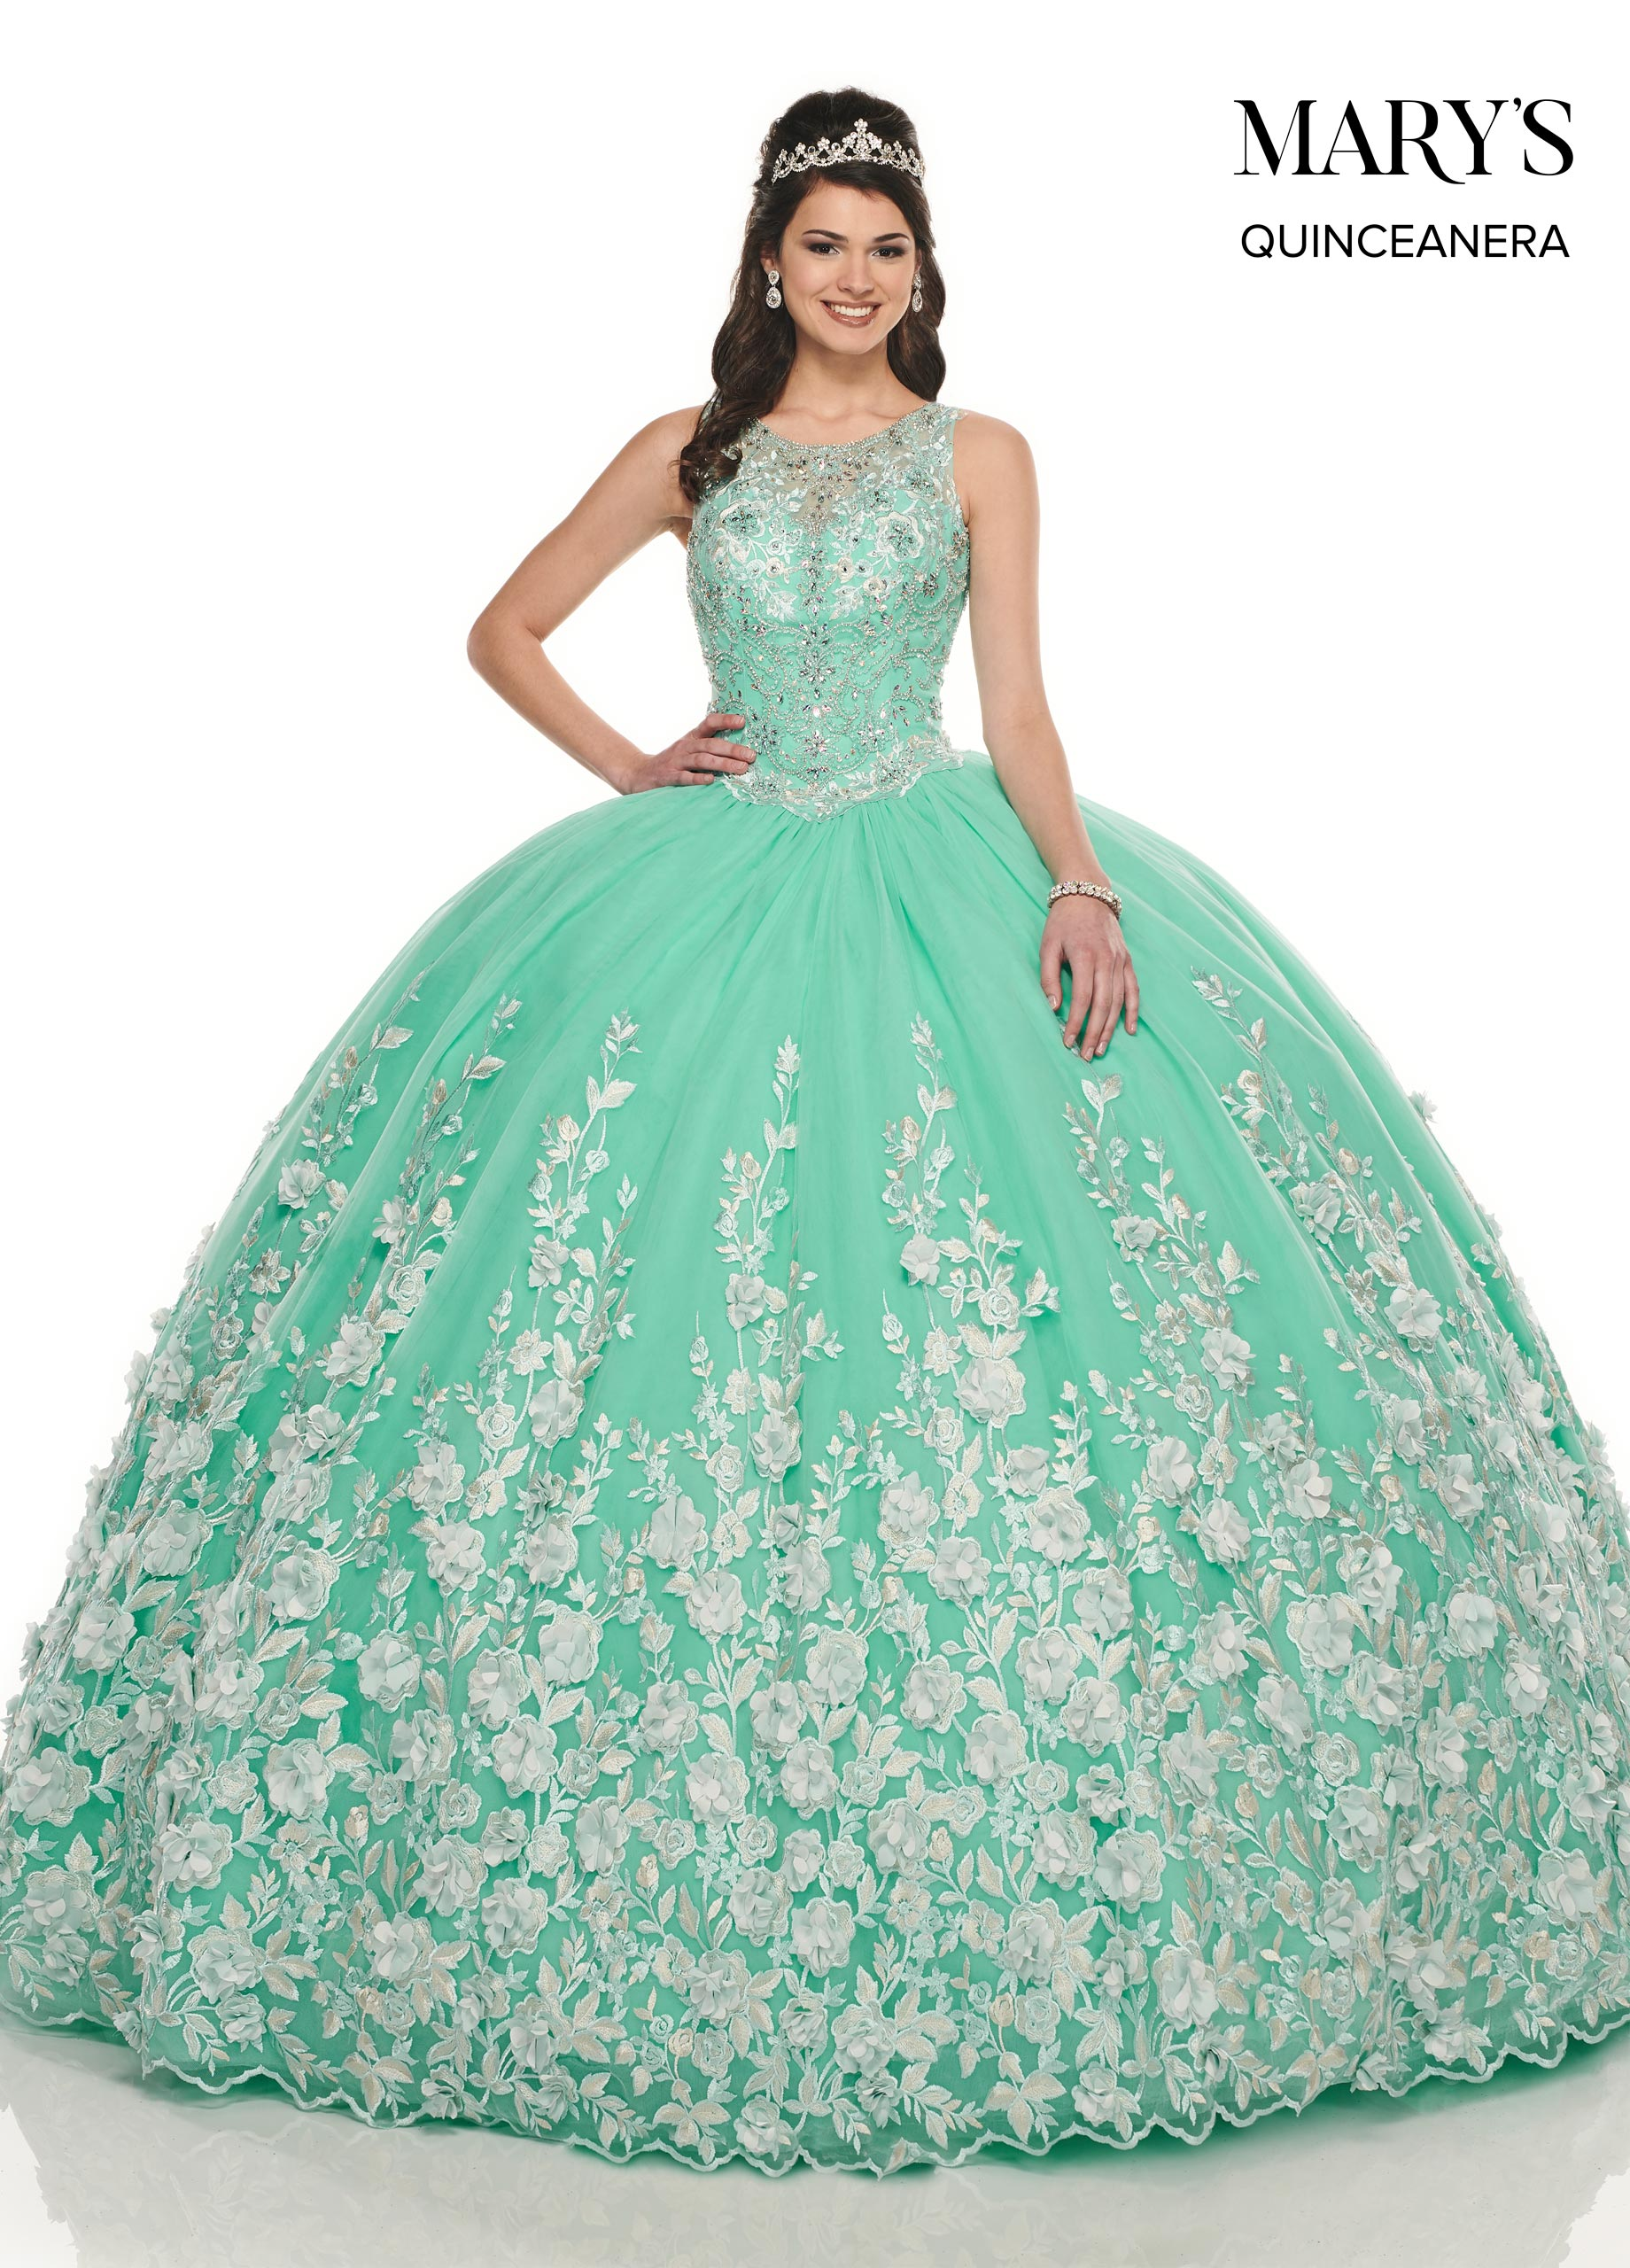 Marys Quinceanera Dresses | Mary's Quinceanera | Style - MQ2084